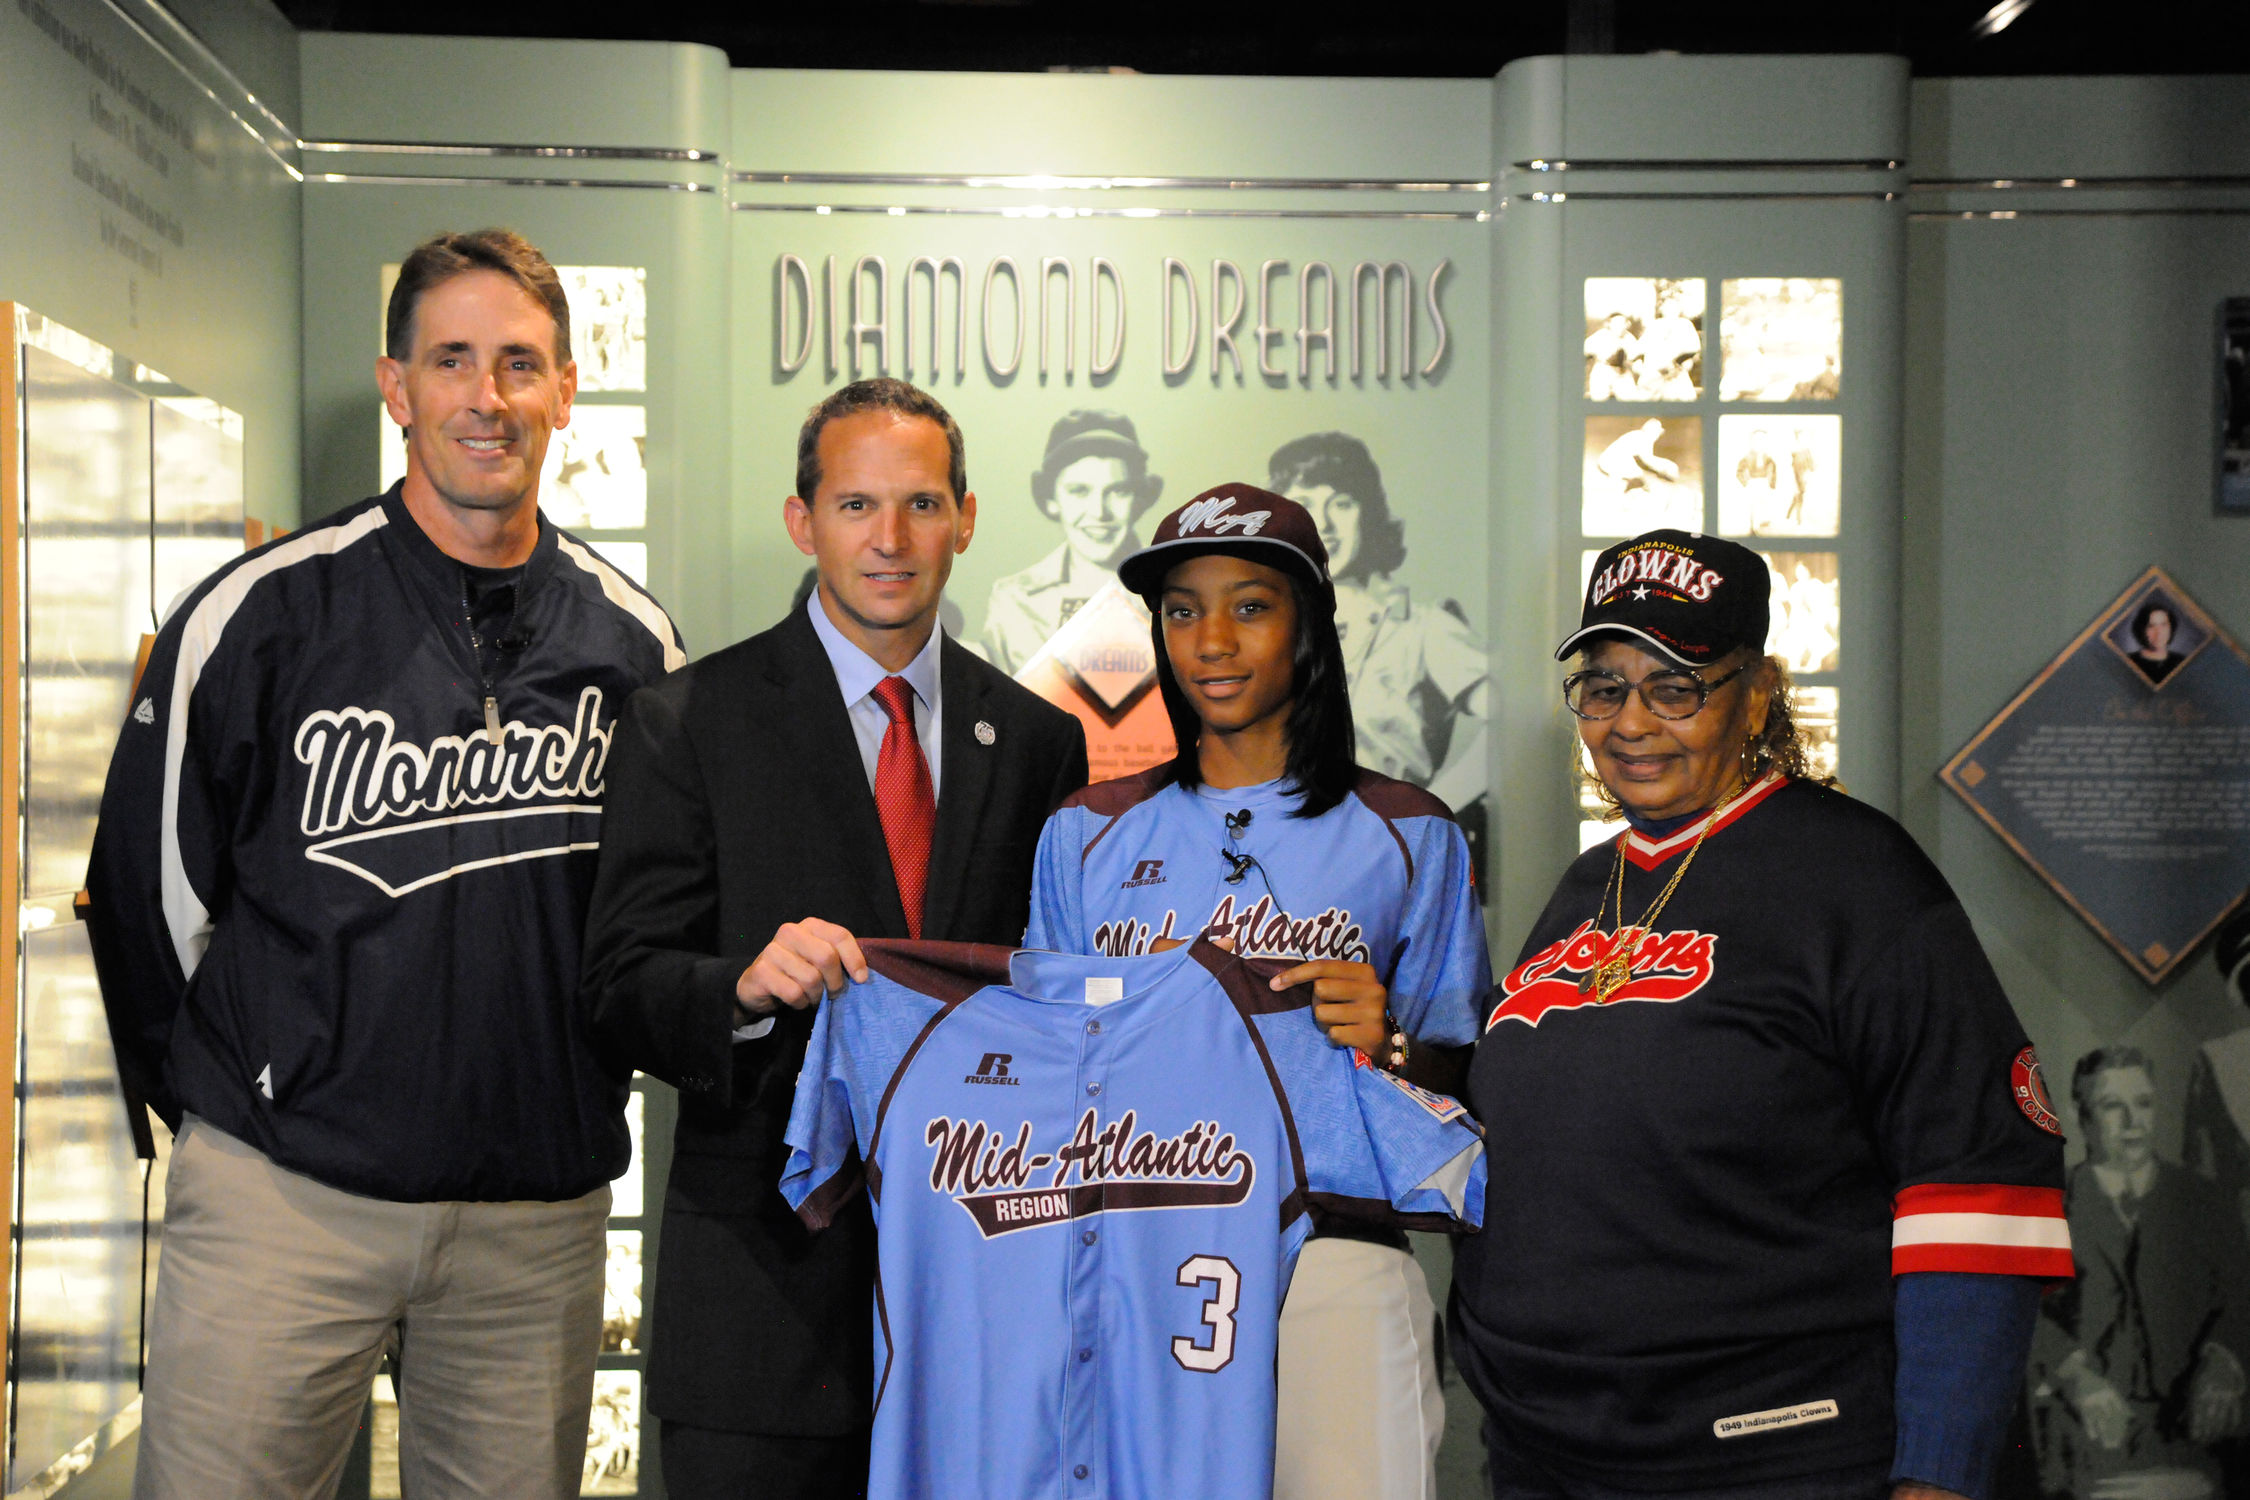 d6af627a2 Mo'ne Davis donated a jersey she wore at the 2014 Little League Baseball  World Series. She is seen here with (left to right) Steve Bandura,  founder/coach of ...